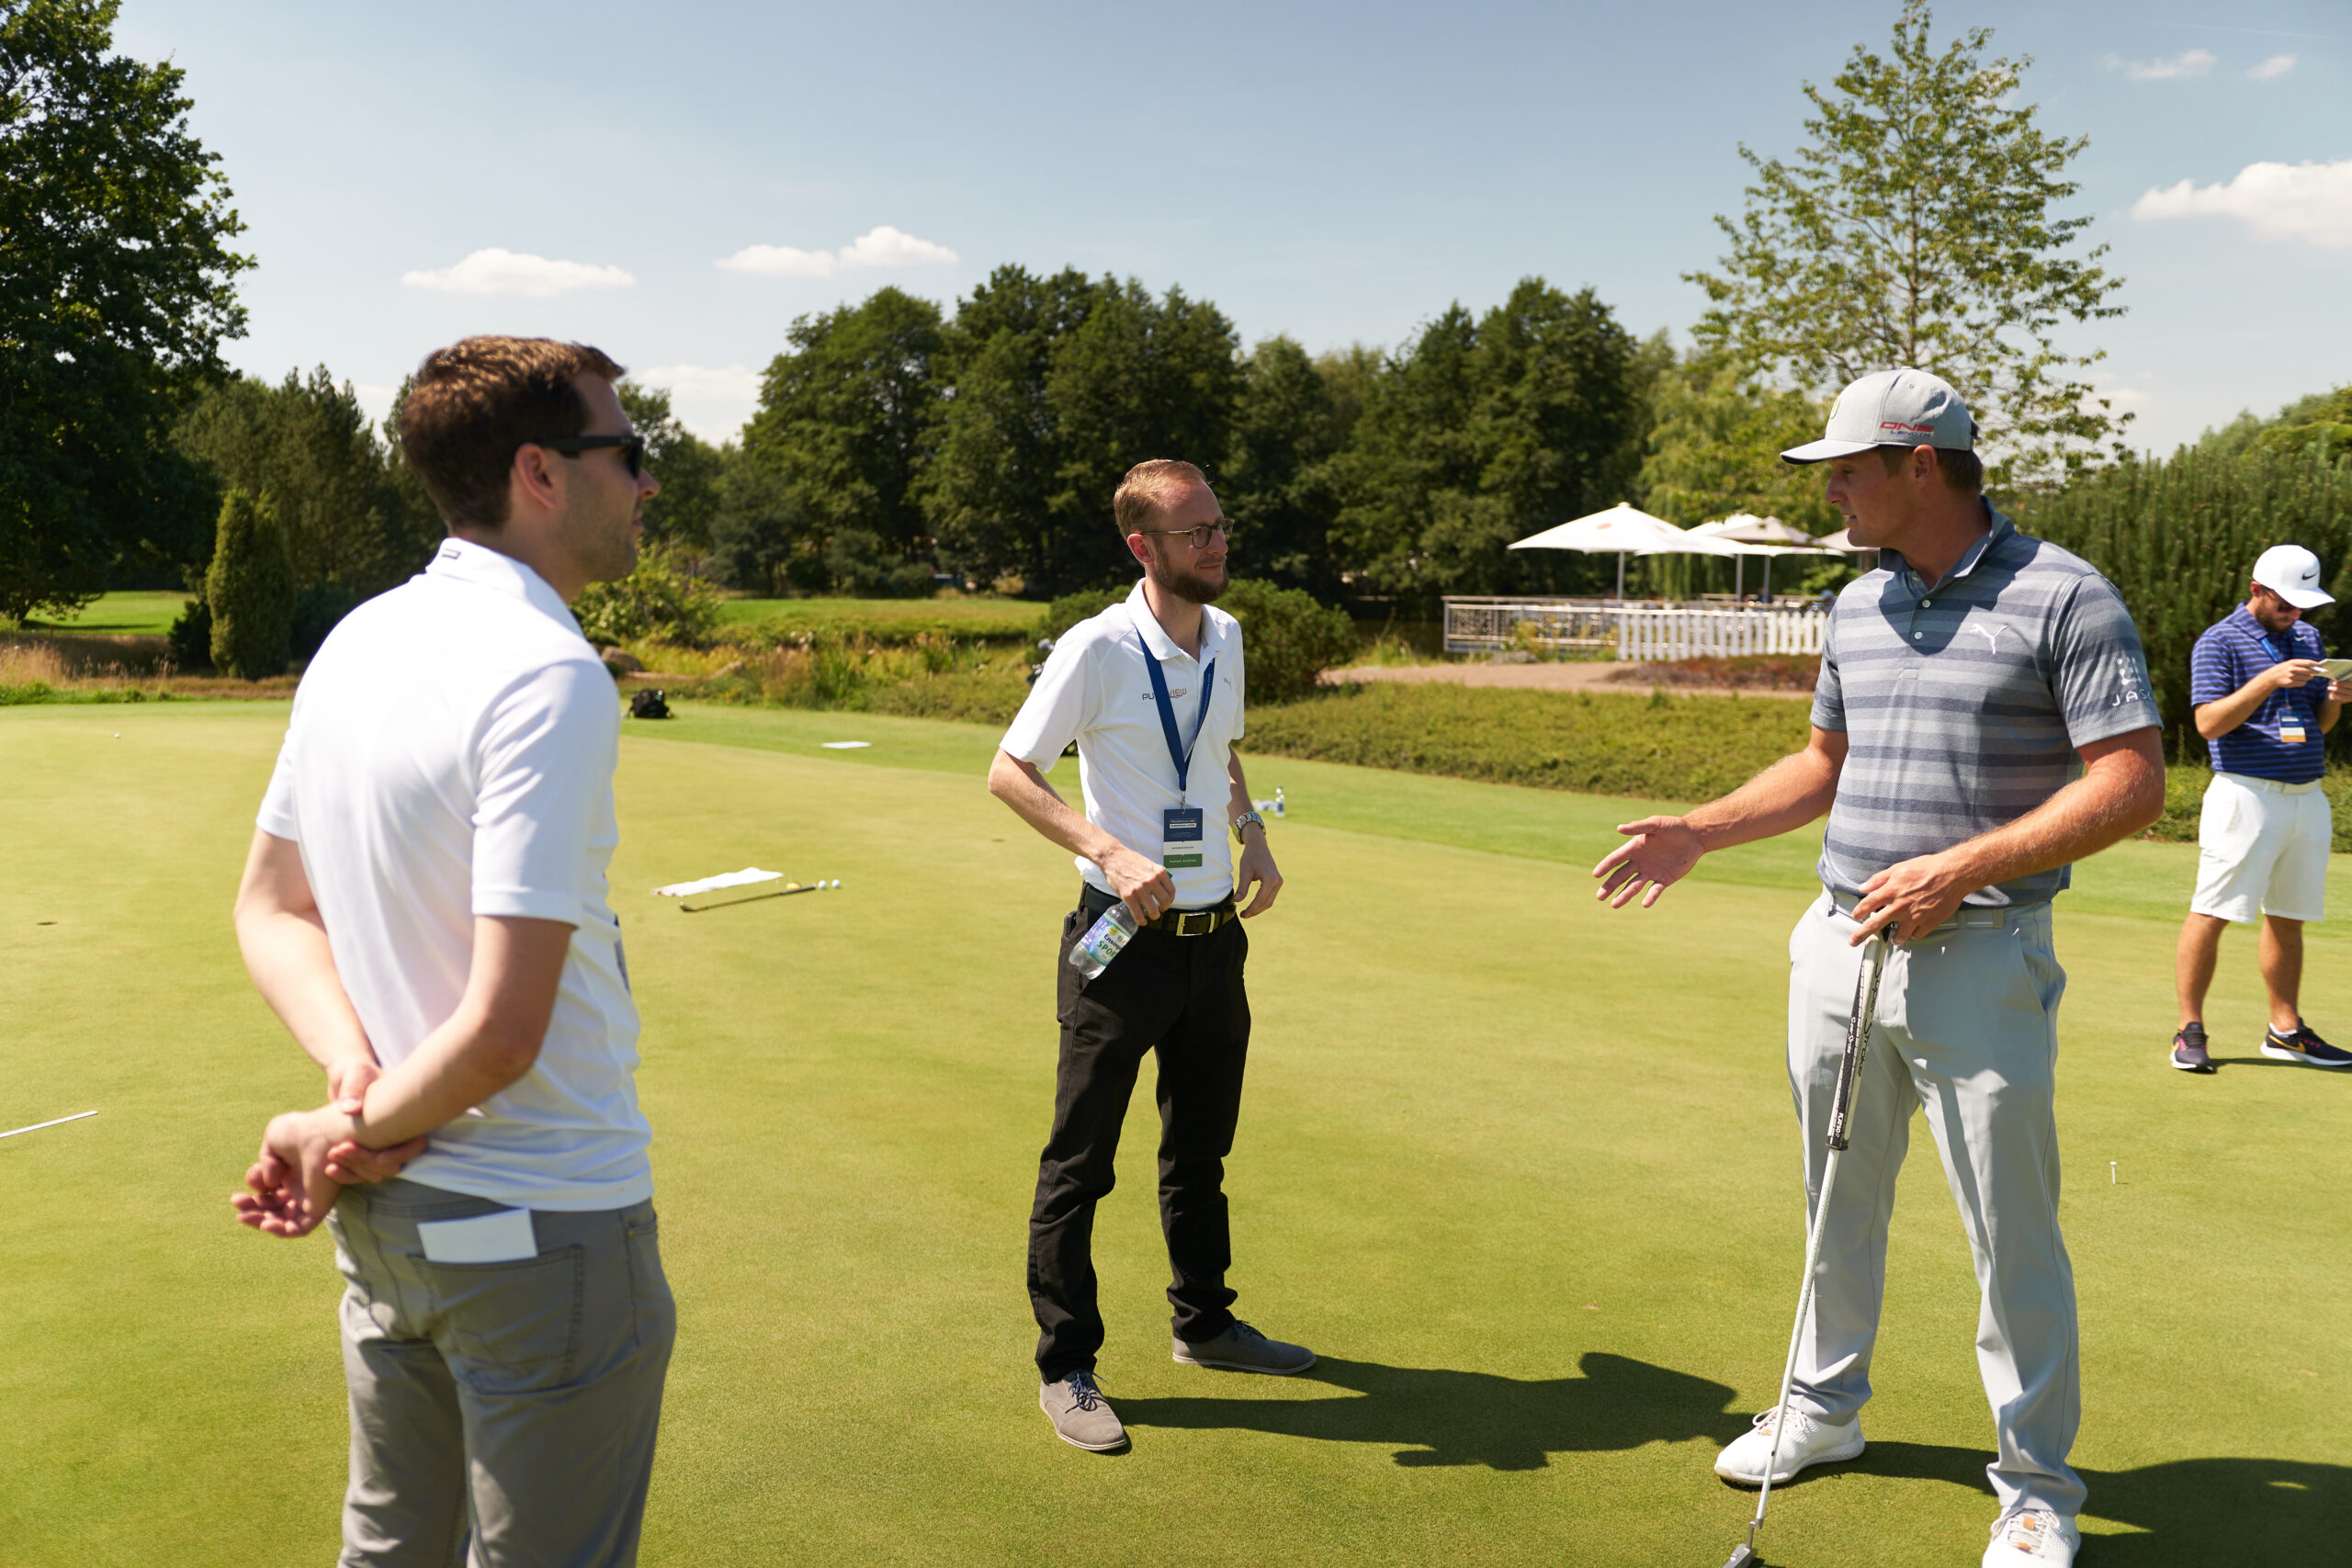 Bryson DeChambeau discusses details with Lukas (middle) and Christoph (right) during the Porsche European Open in Hamburg, where he was able to test PuttView Outdoor. © puttview.com